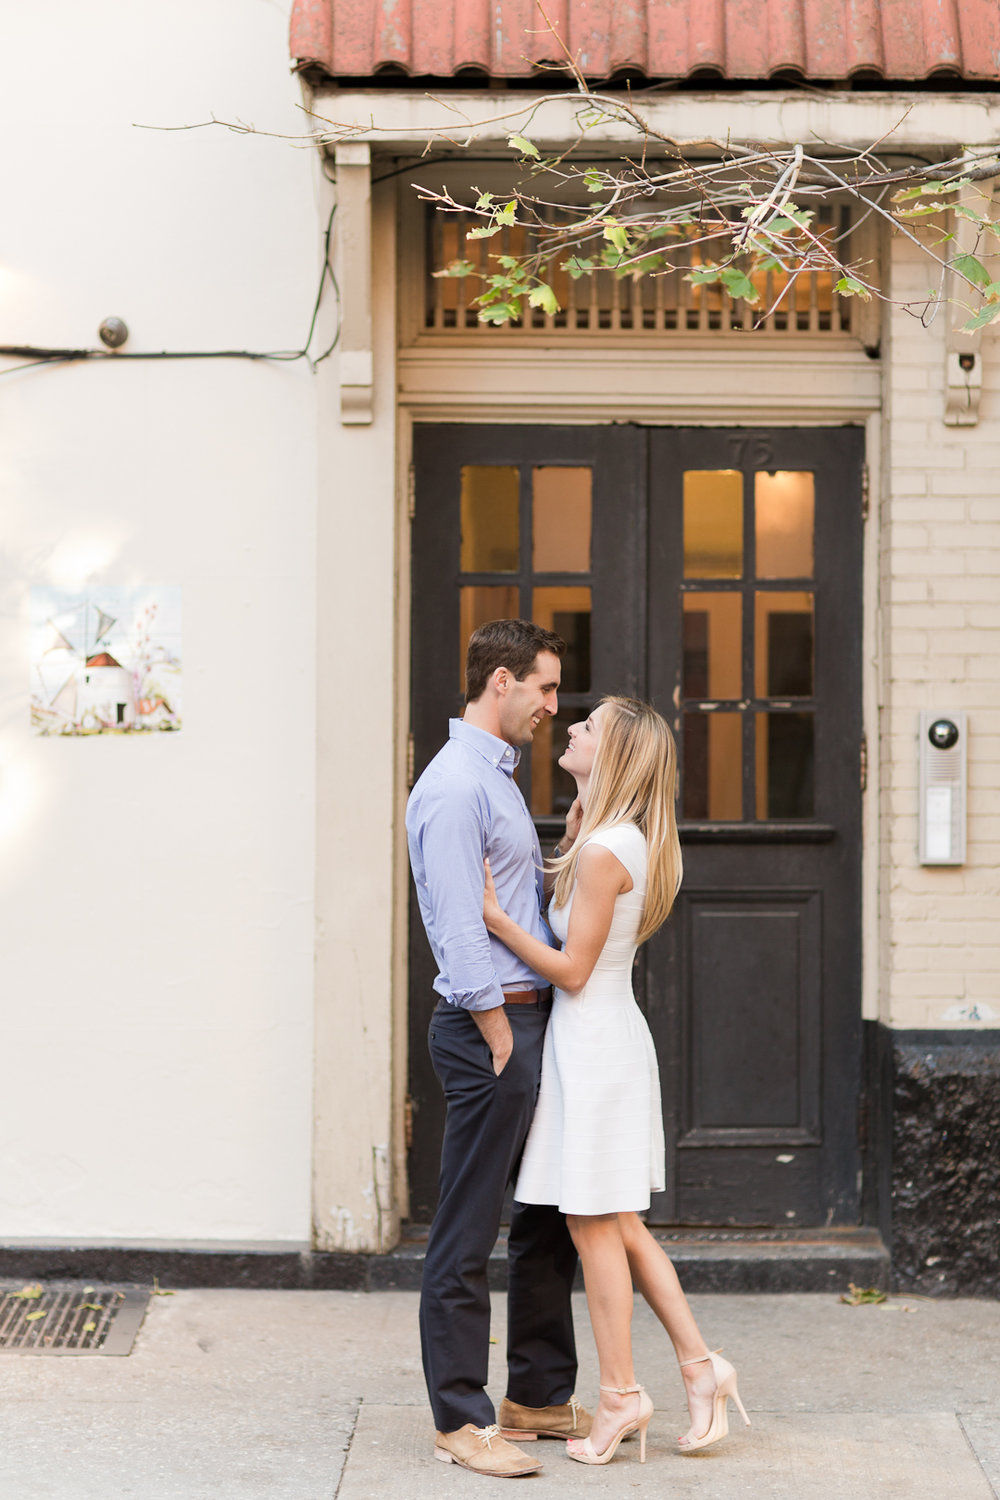 Melissa Kruse Photography - Daniece & Chris West Village Engagement Photos-47.jpg